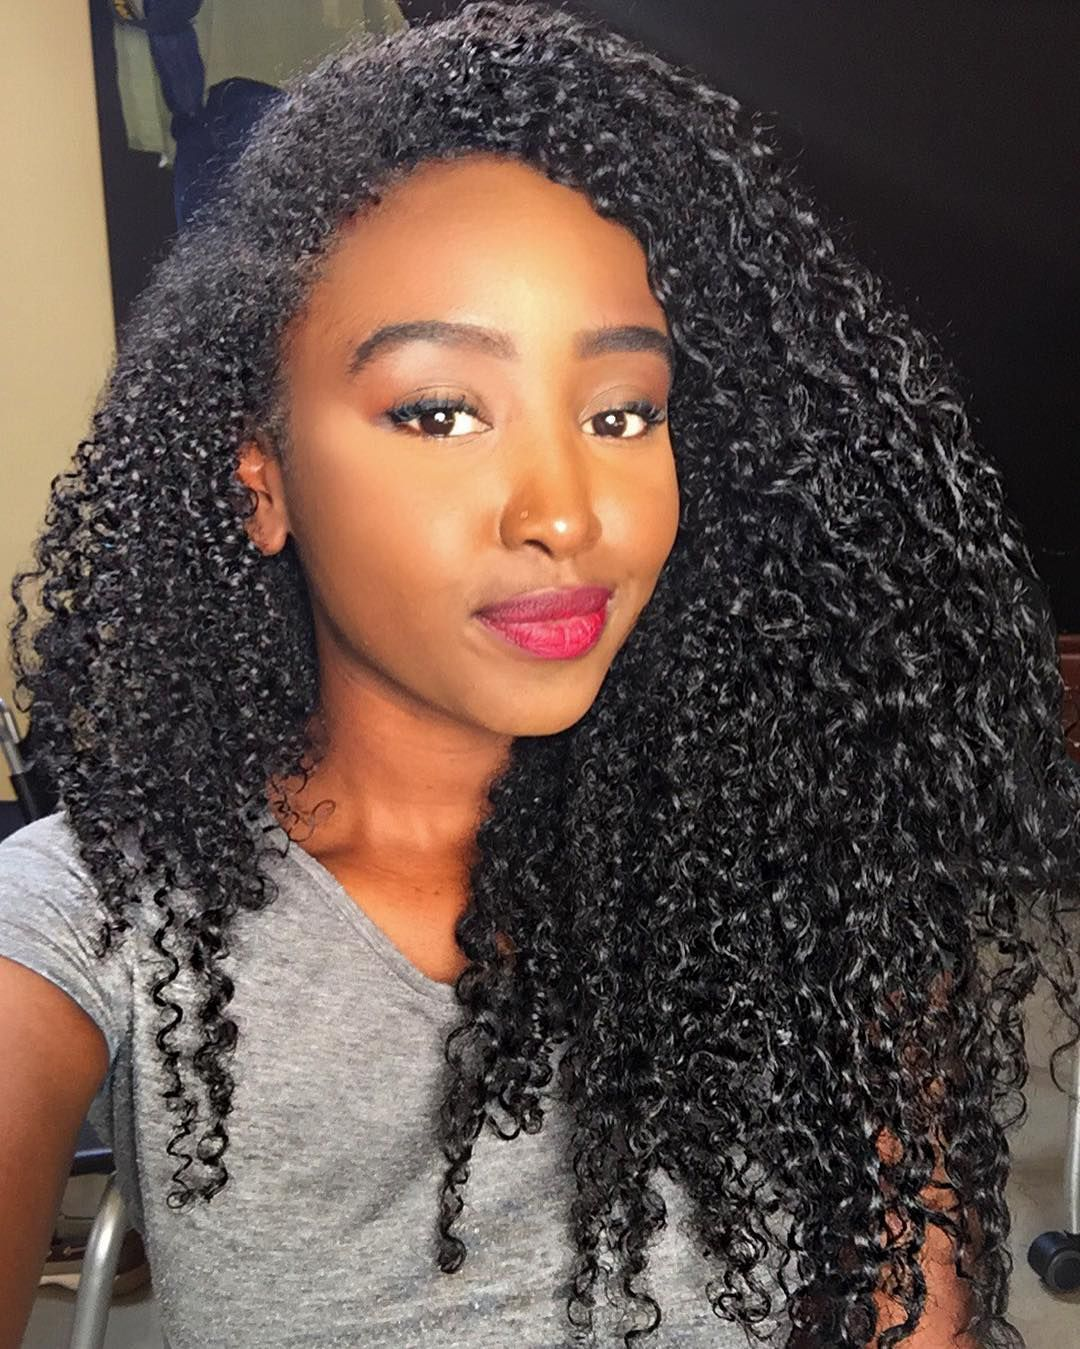 27-Year-Old Muhga Eltigani Secures $1M Investment For Haircare Line From Founder Of Shea Moisture